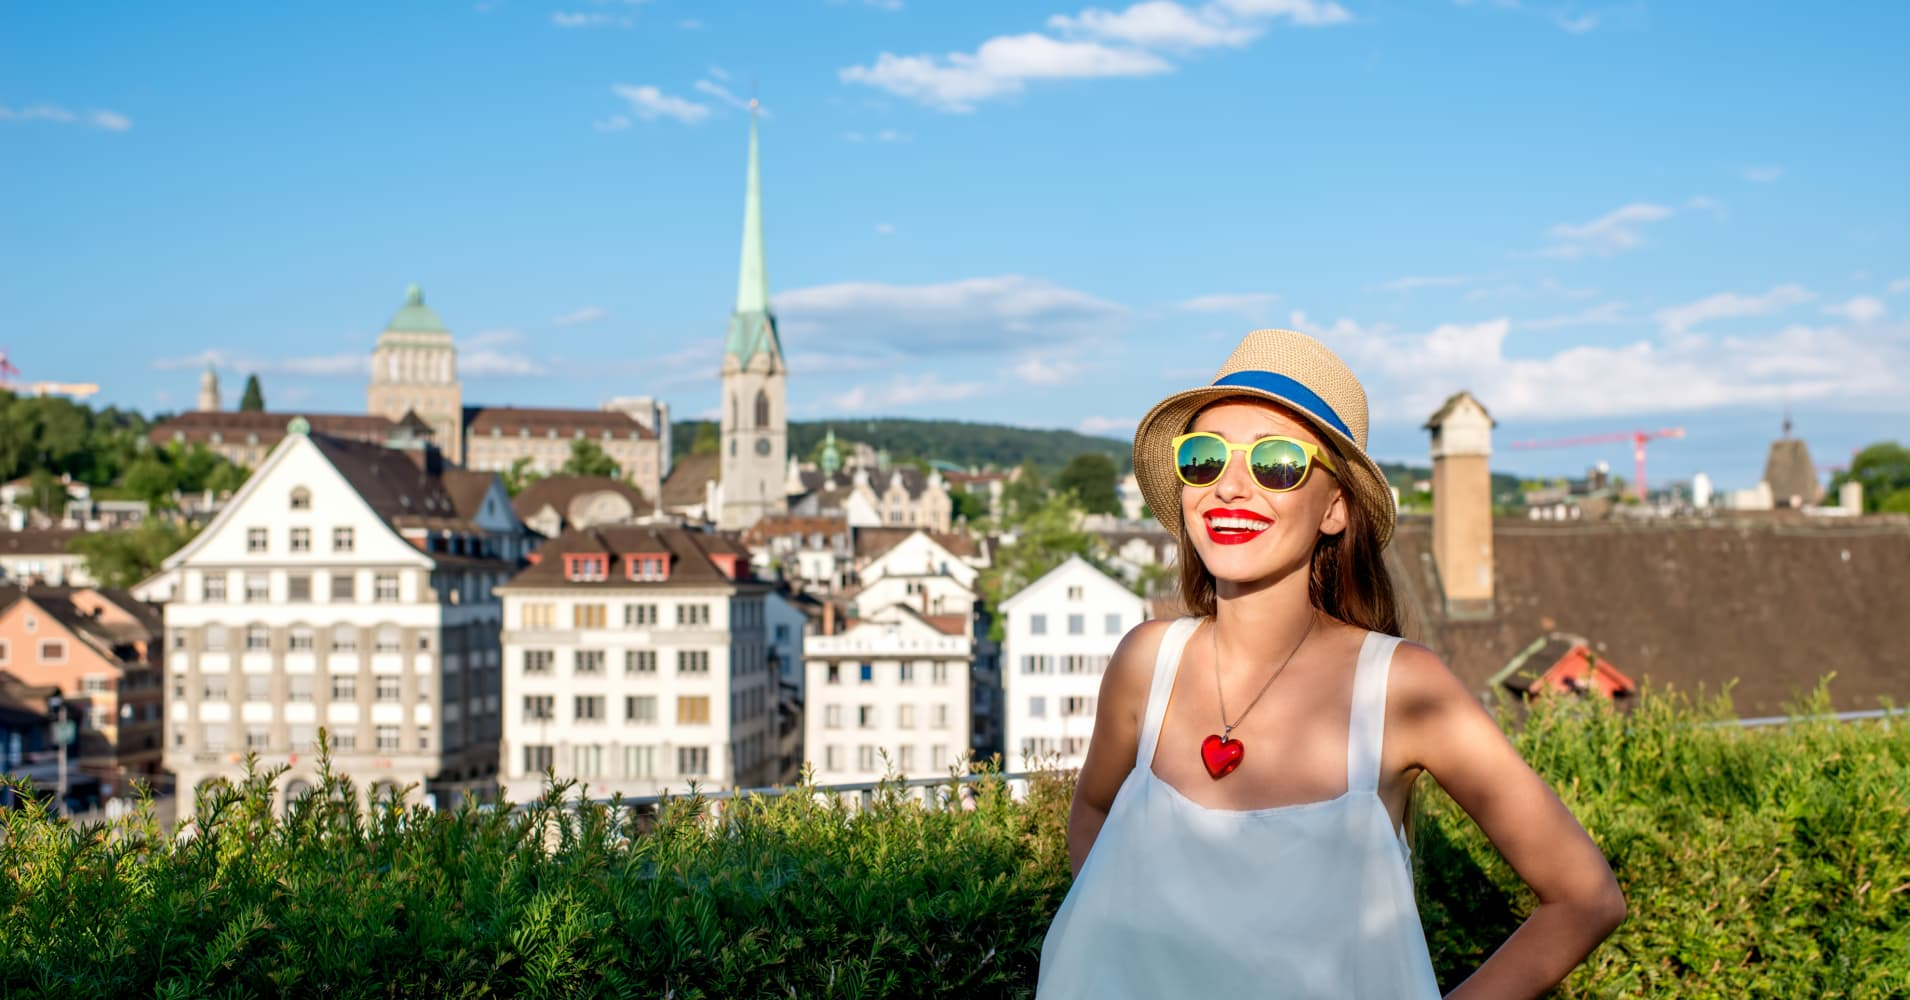 A tourist stands in Zurich, Switzerland.